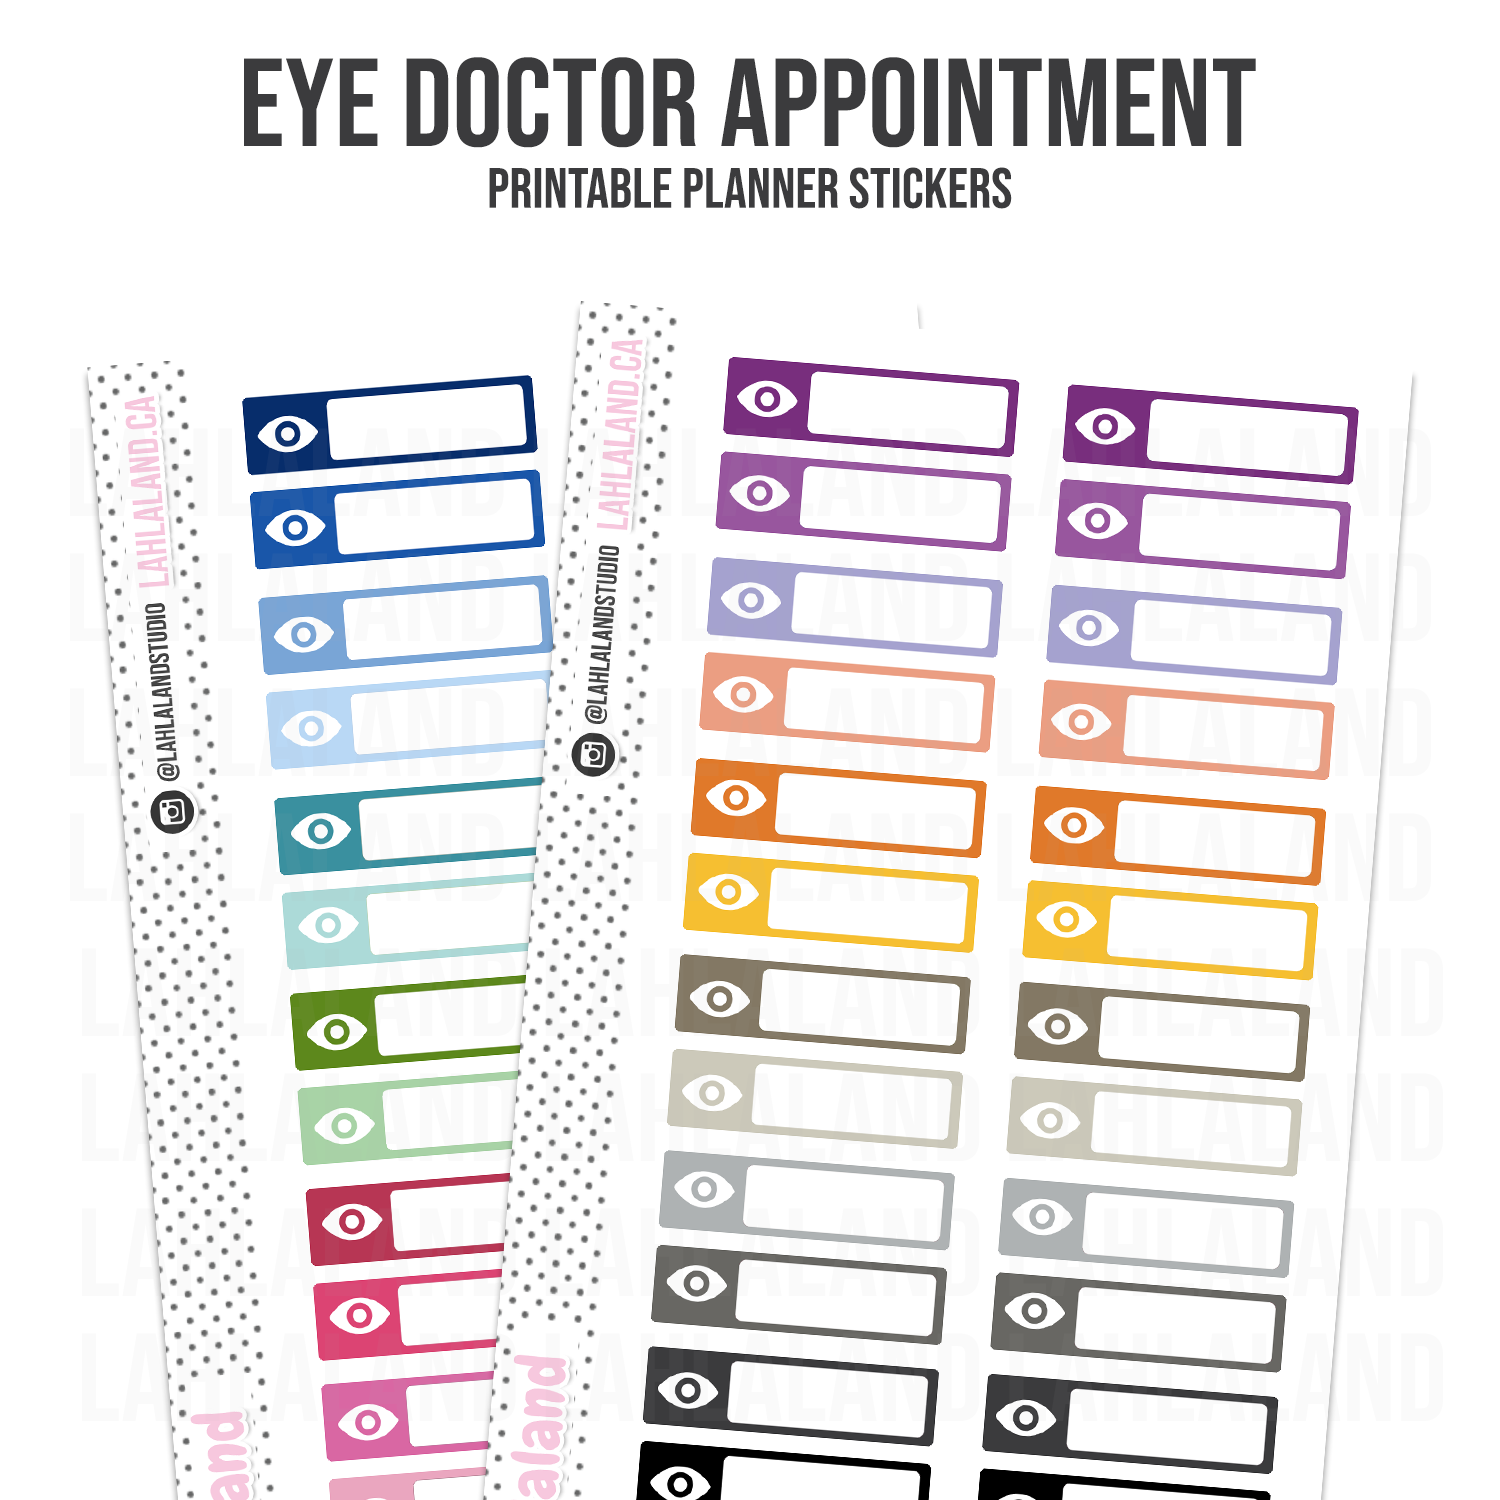 Eye Doctor Appointment - Functional Stickers